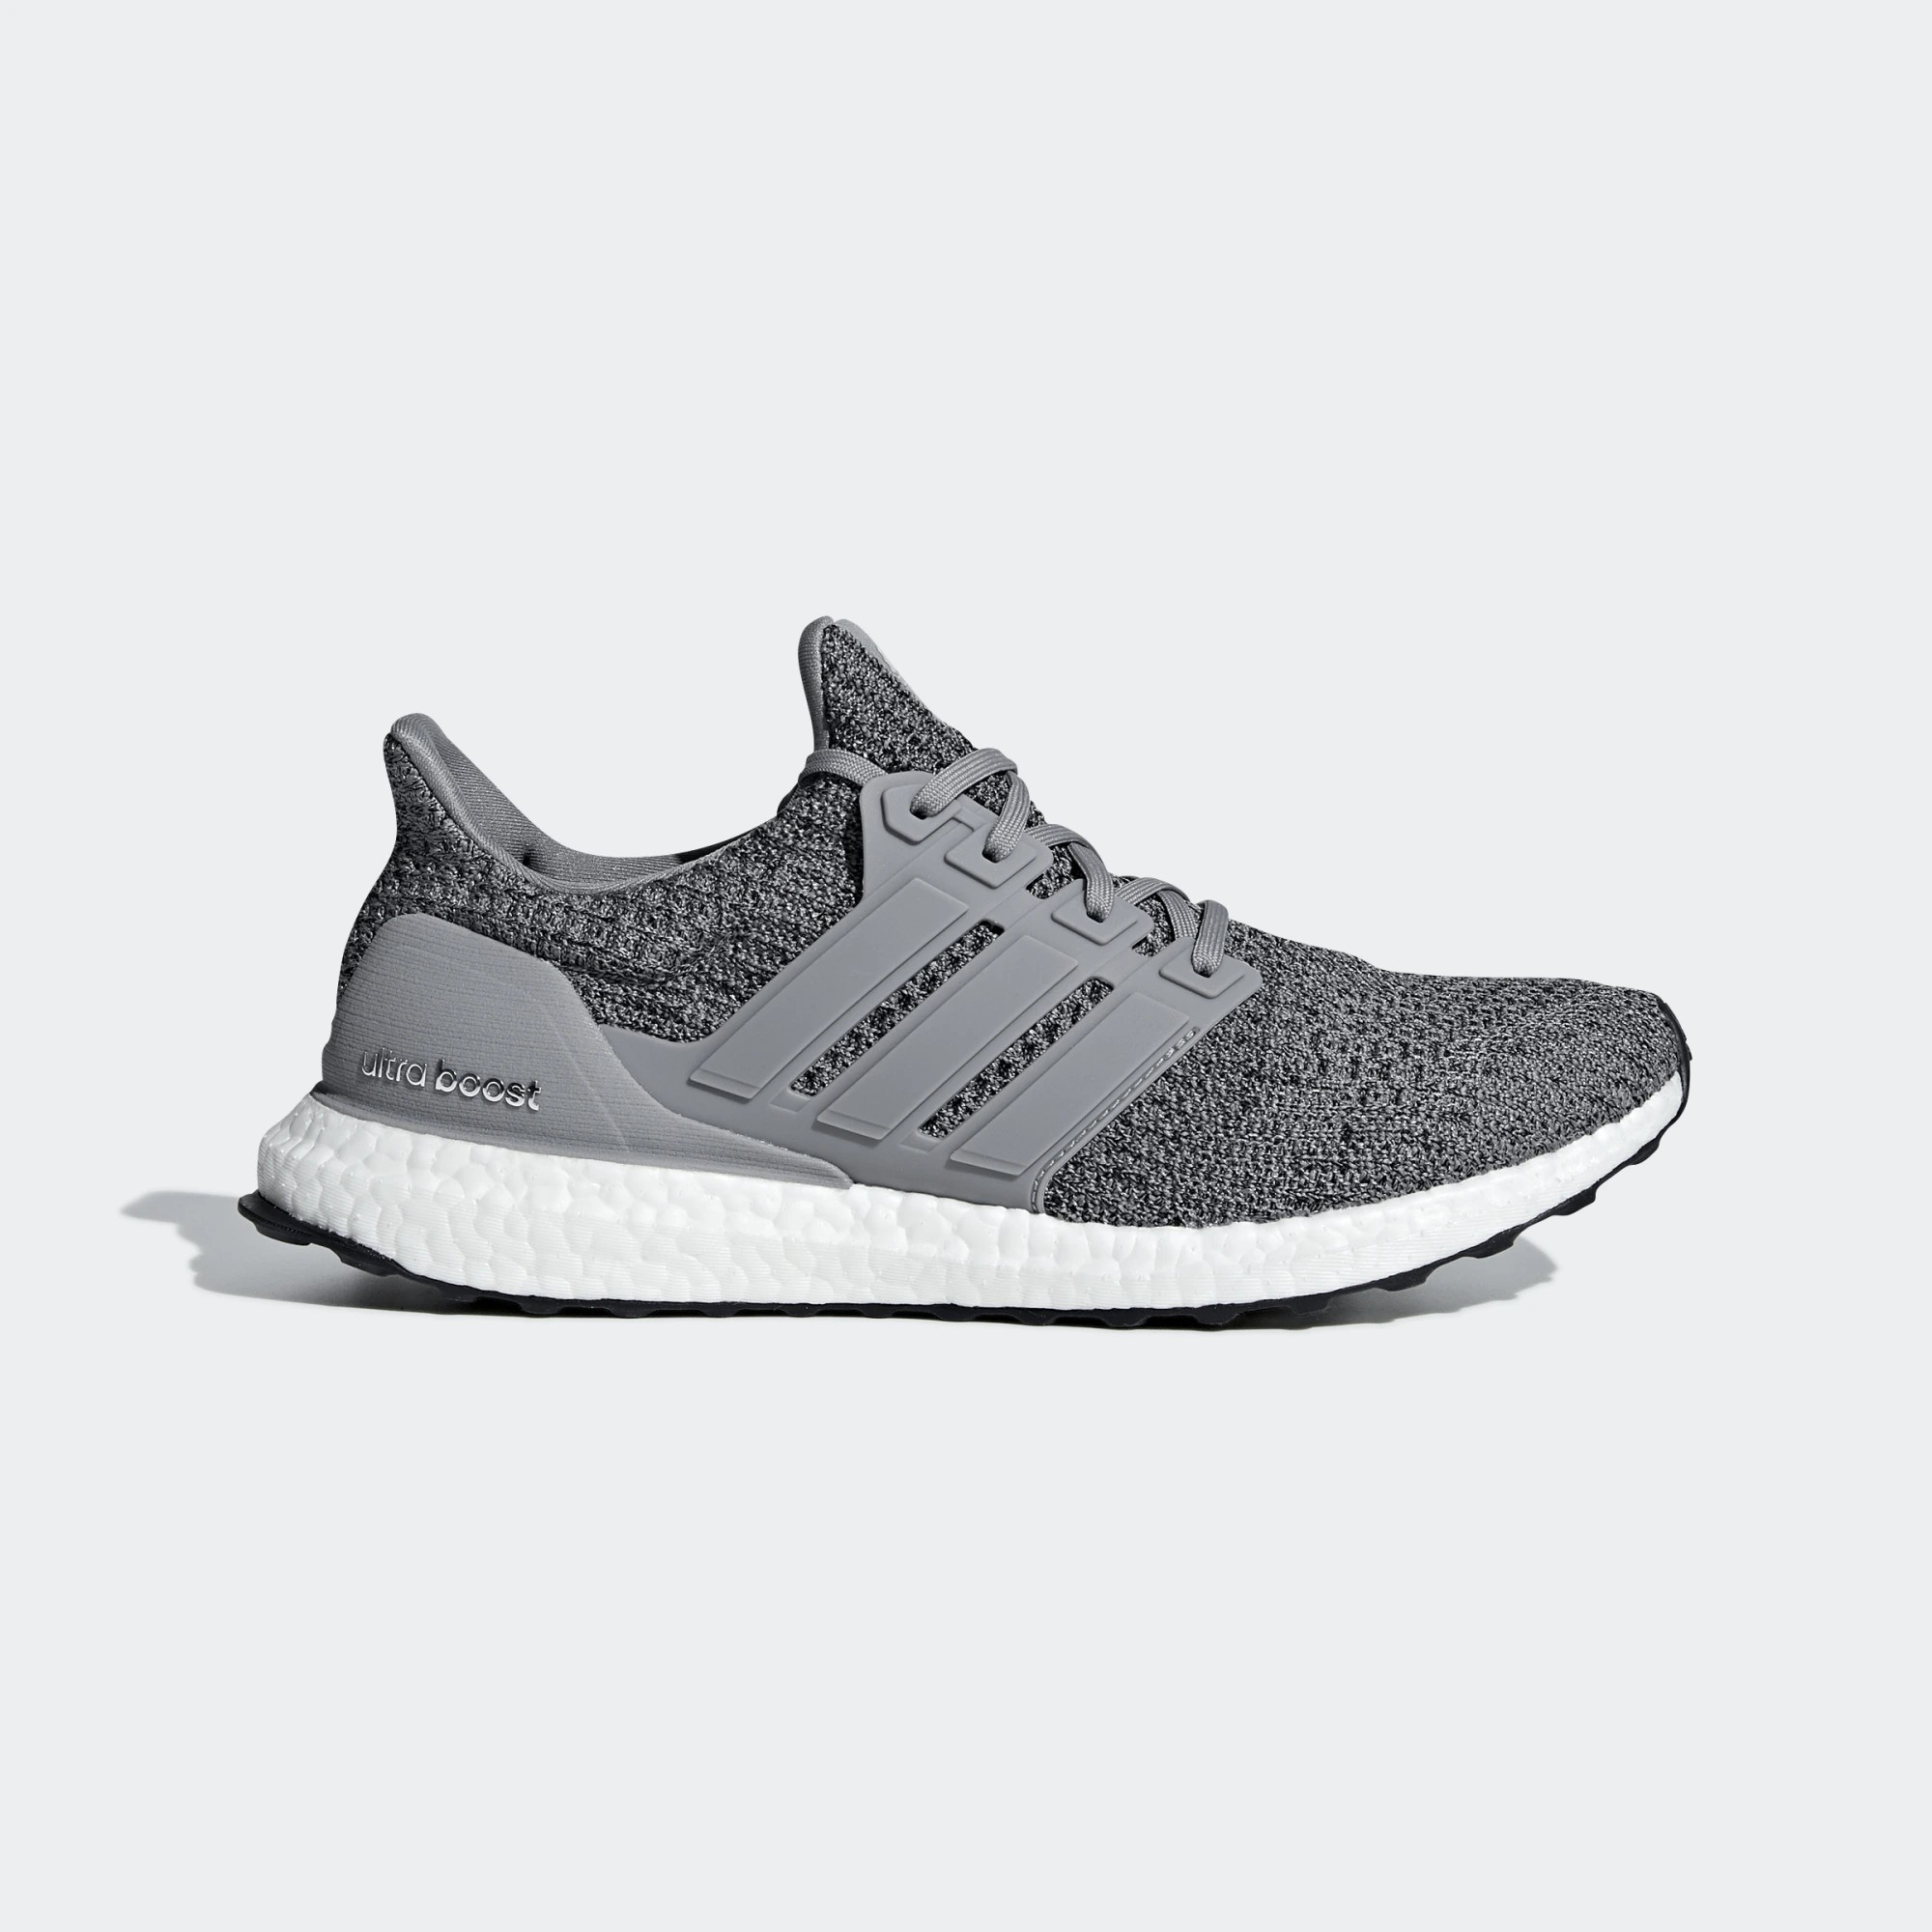 Adidas UltraBoost Men's Sneakers F36156 Grey/White/Black